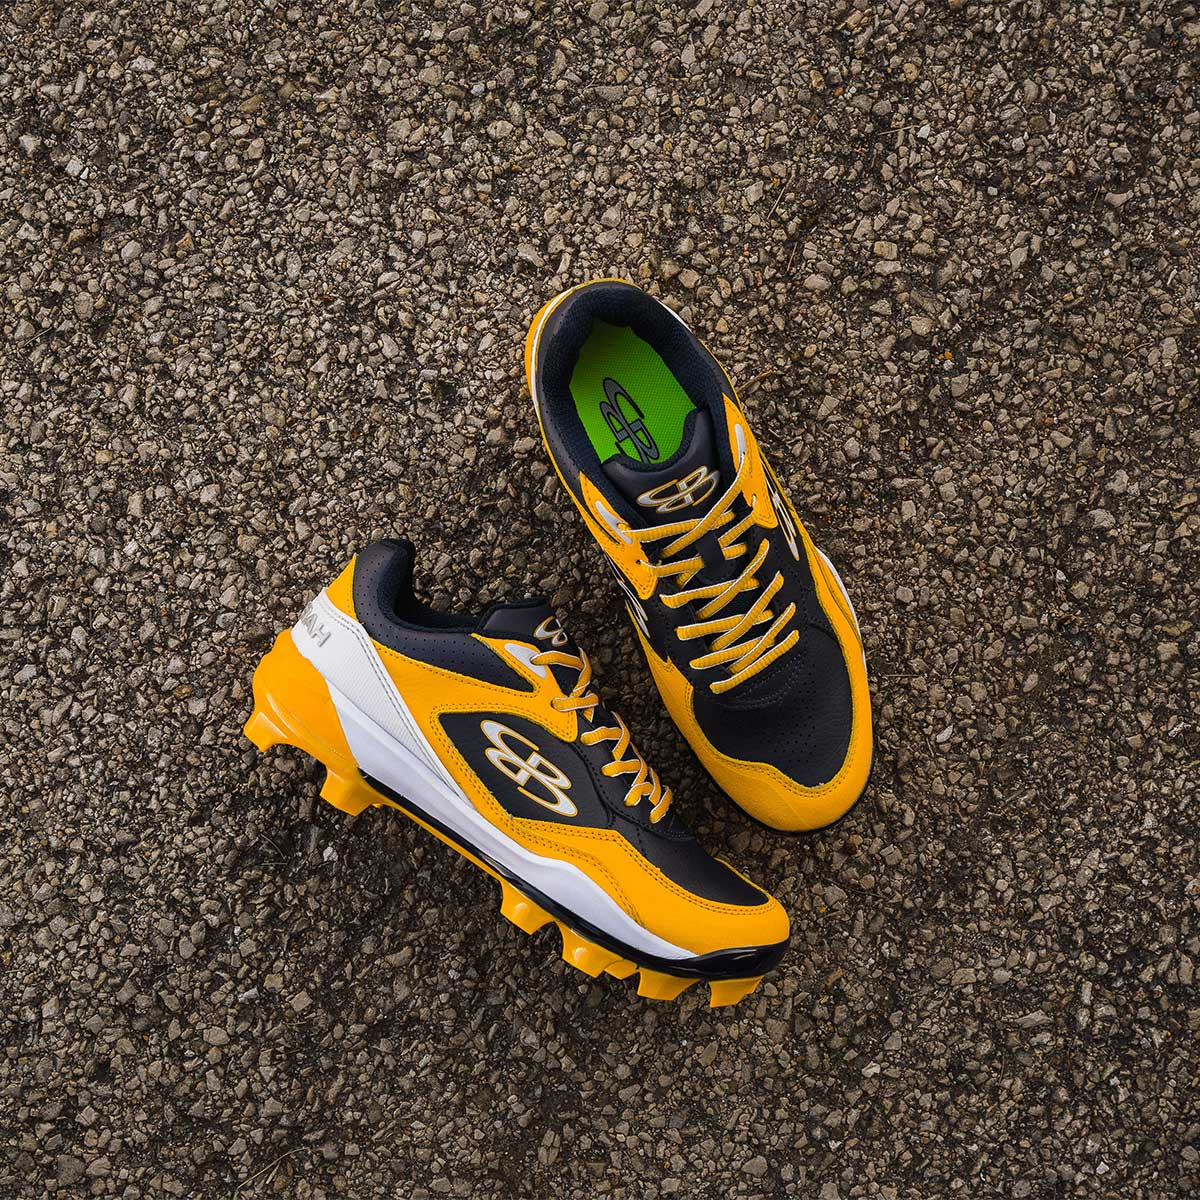 a9281a9dcaf The Endura comes in turfs, molded & metal cleats, and pitcher's toe cleats.  http://bit.ly/2N2hD03 #Boombah #Endura #Fastpitch #Softball  #FastpitchCleats ...